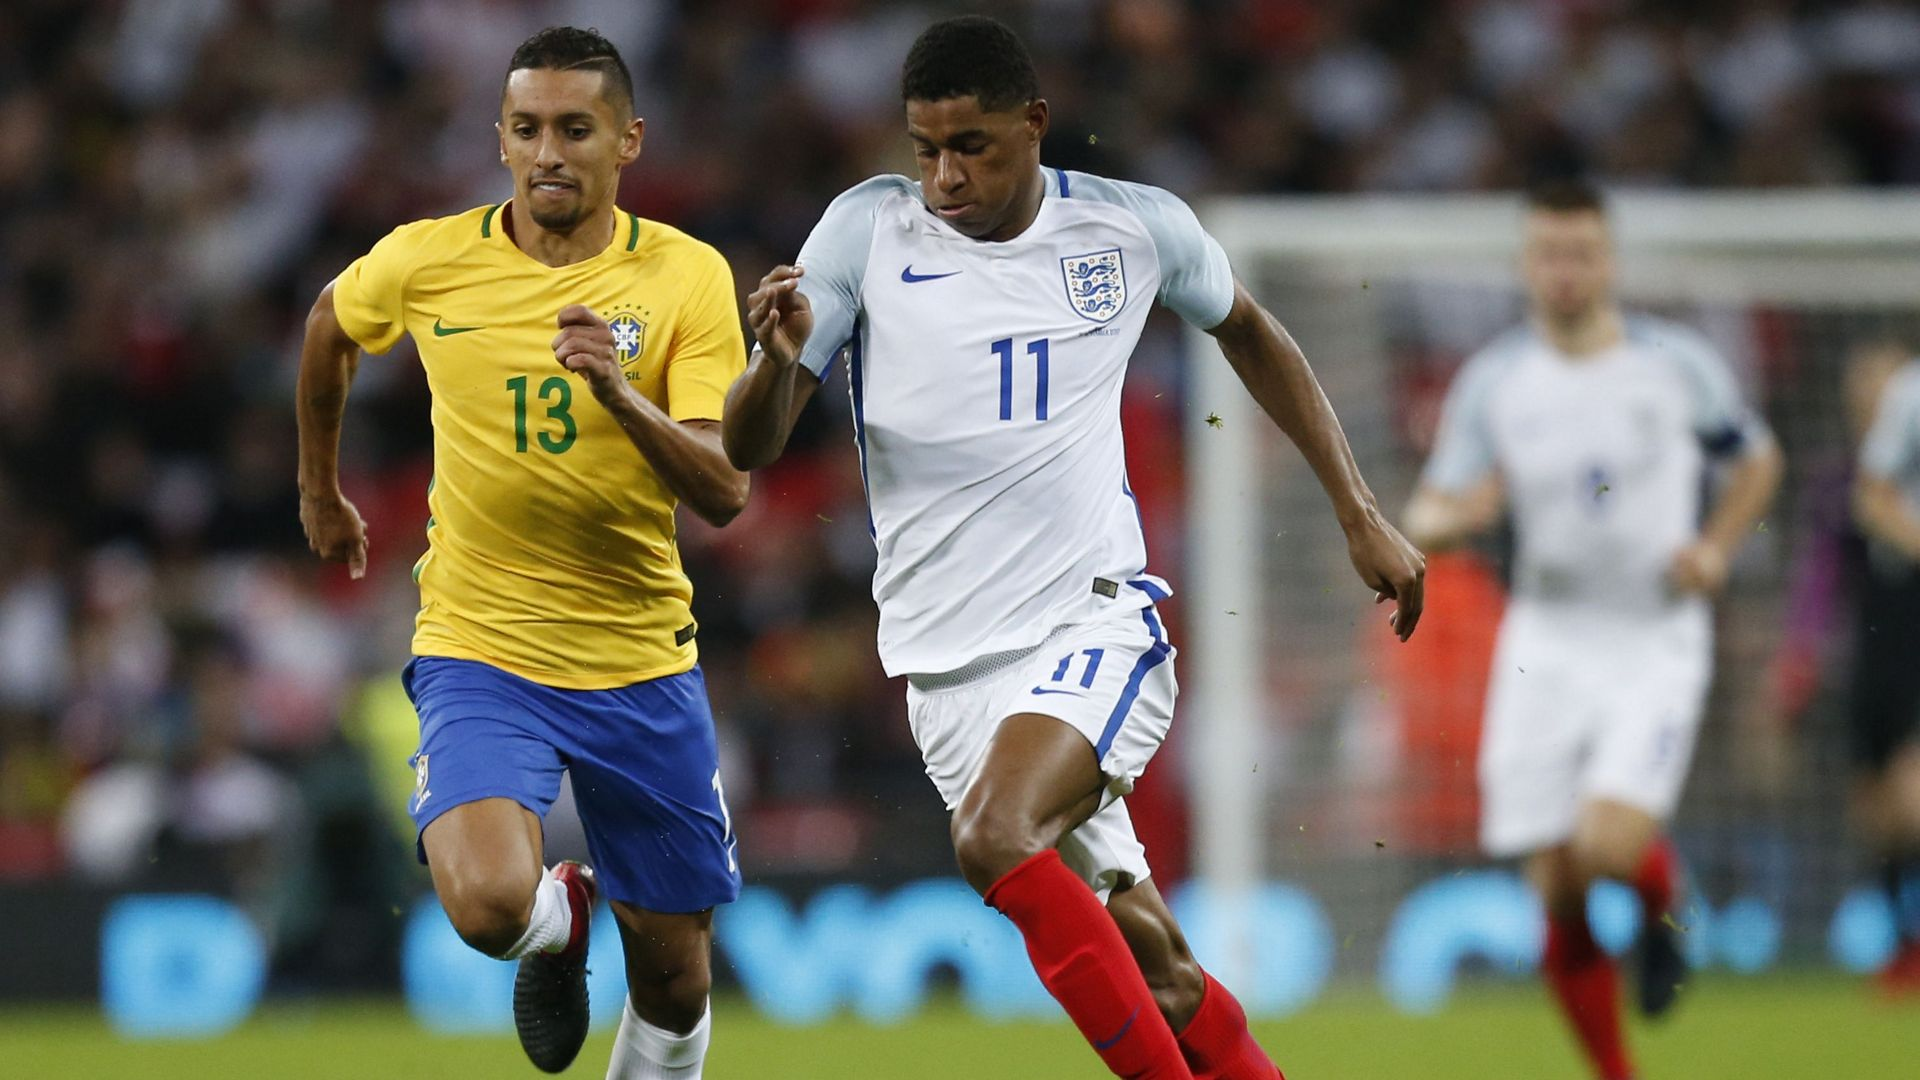 Marquinhos Marcus Rashford England Brazil Friendly 14112017